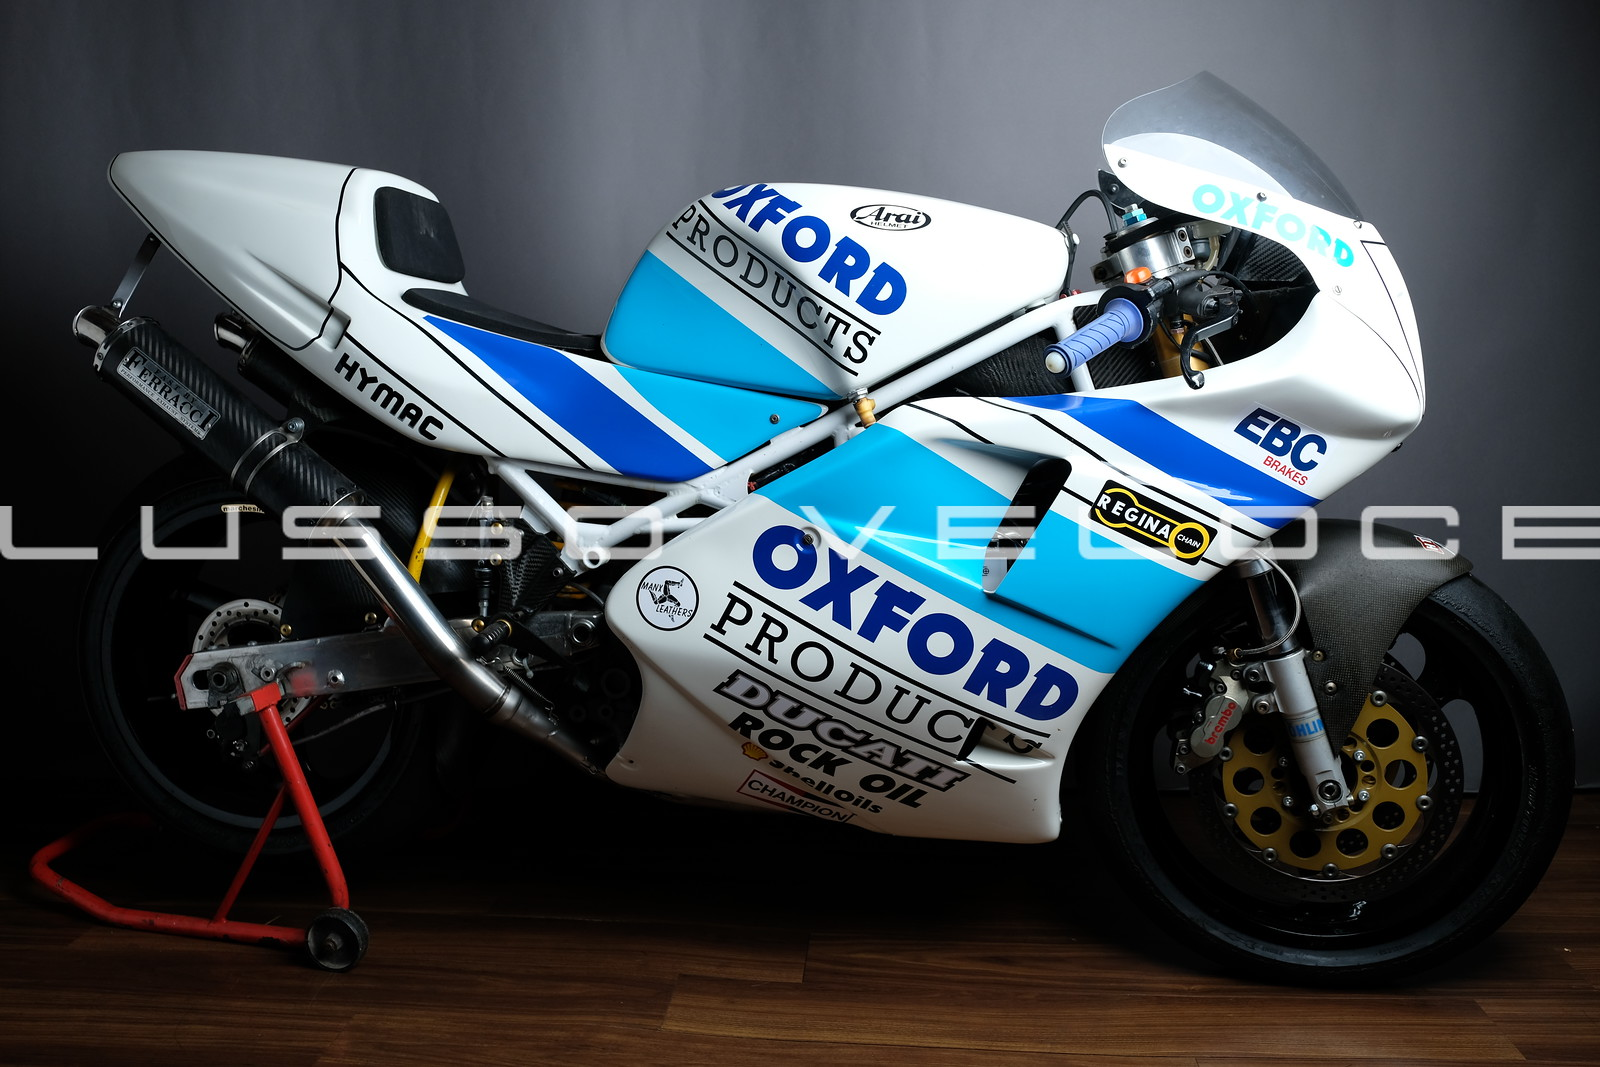 Ducati 888 Corse Ex Hizzy, Nation, Dunlop, Stringer!